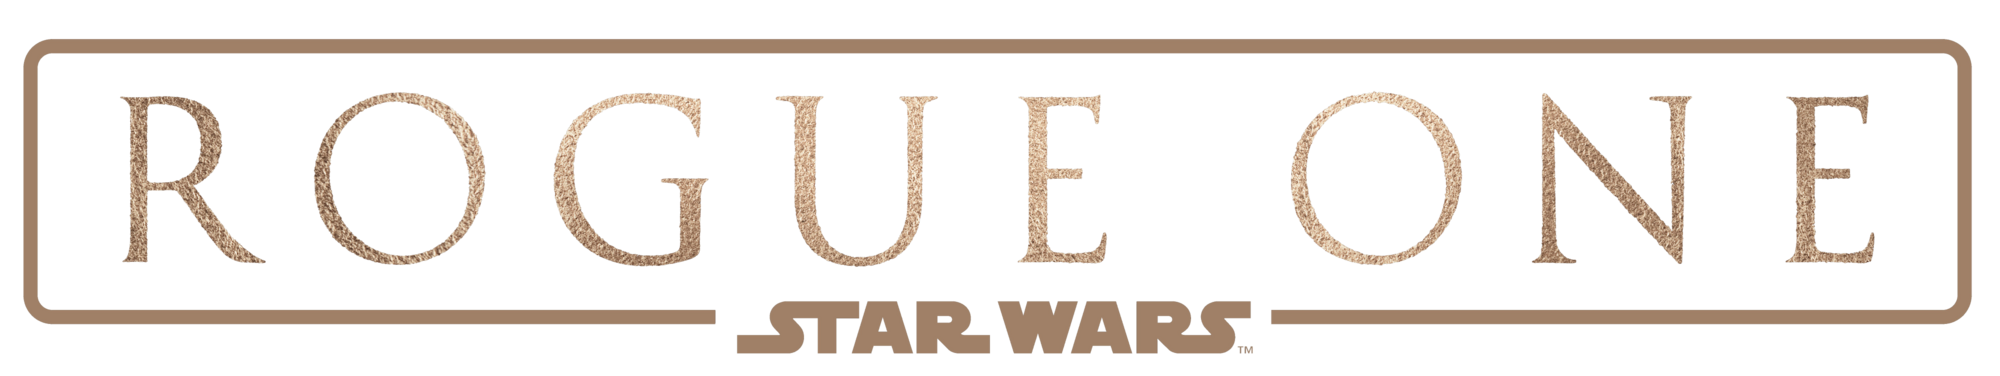 Rogue One  Disney Wiki  FANDOM powered by Wikia